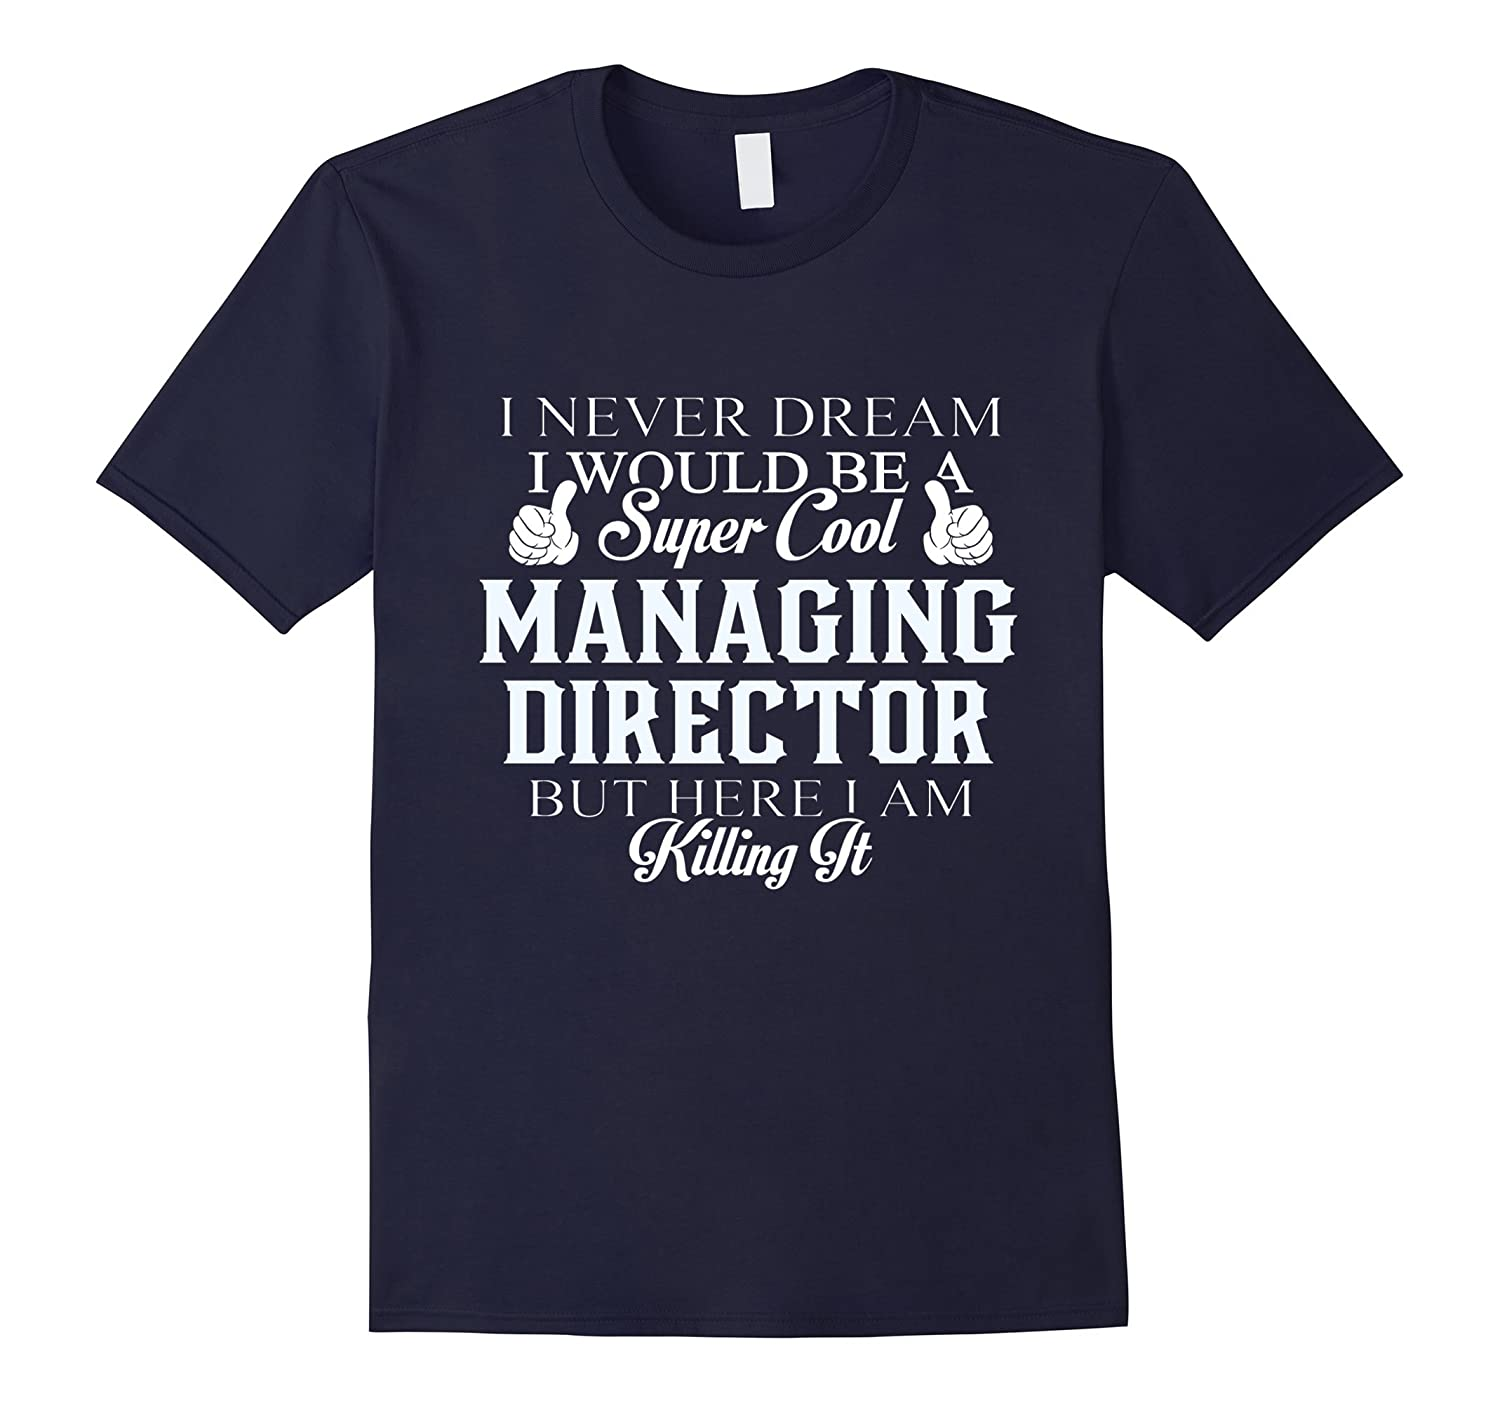 Dreamed would be super cool Managing director killing it-Vaci